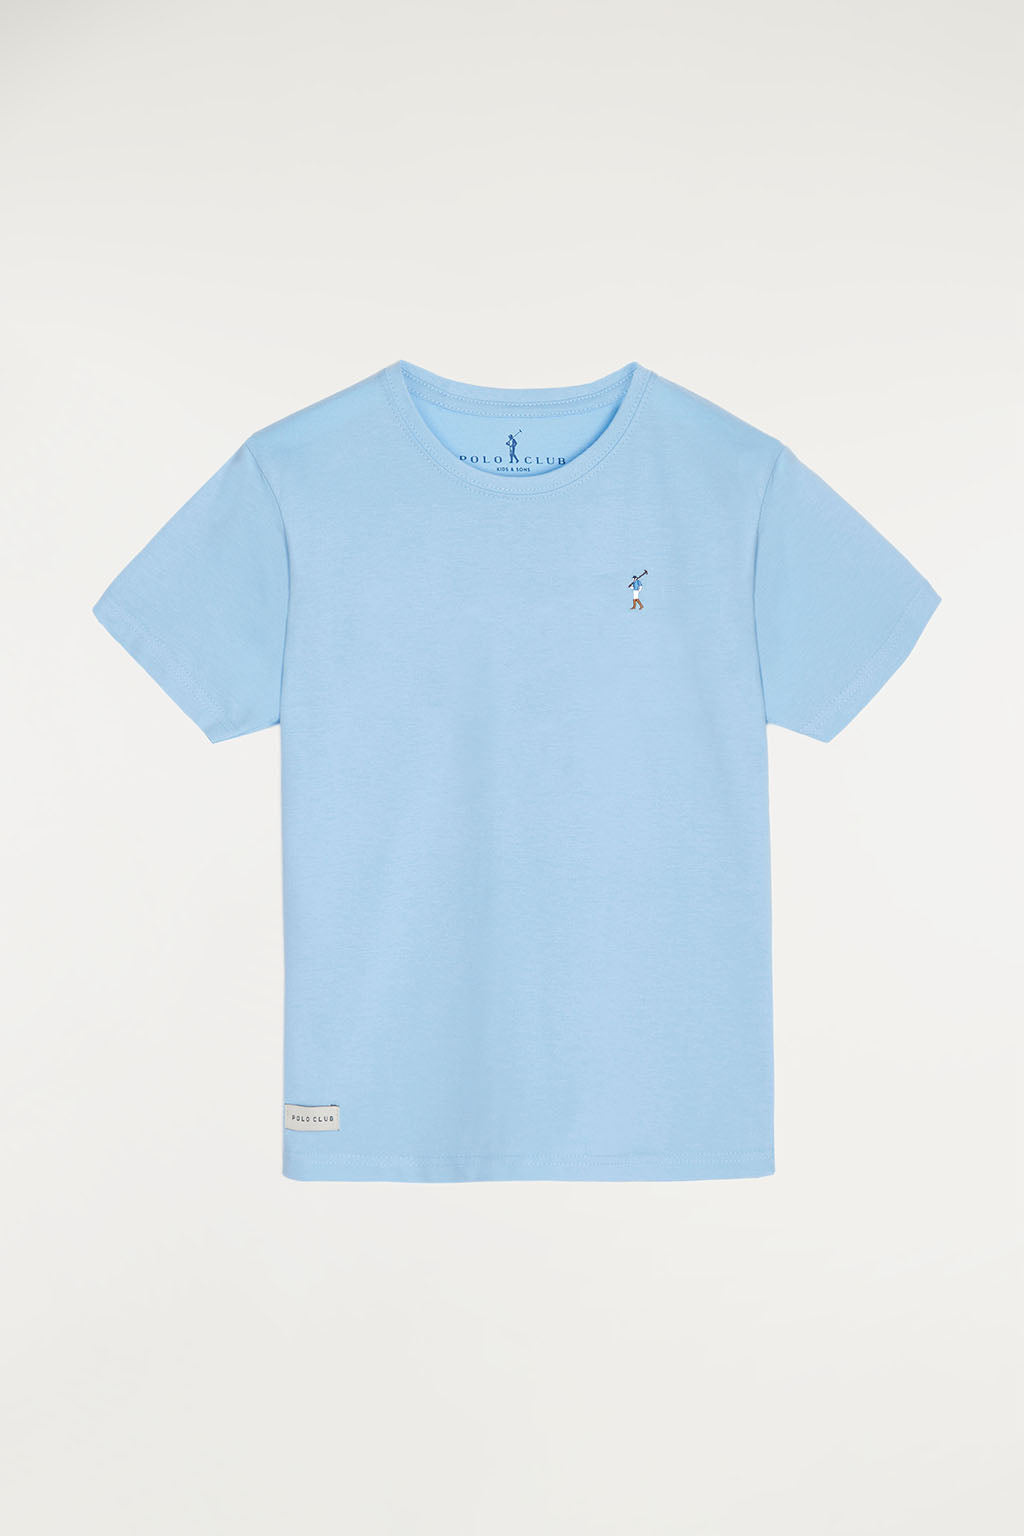 Sky blue tee with small multicoloured embroidered logo